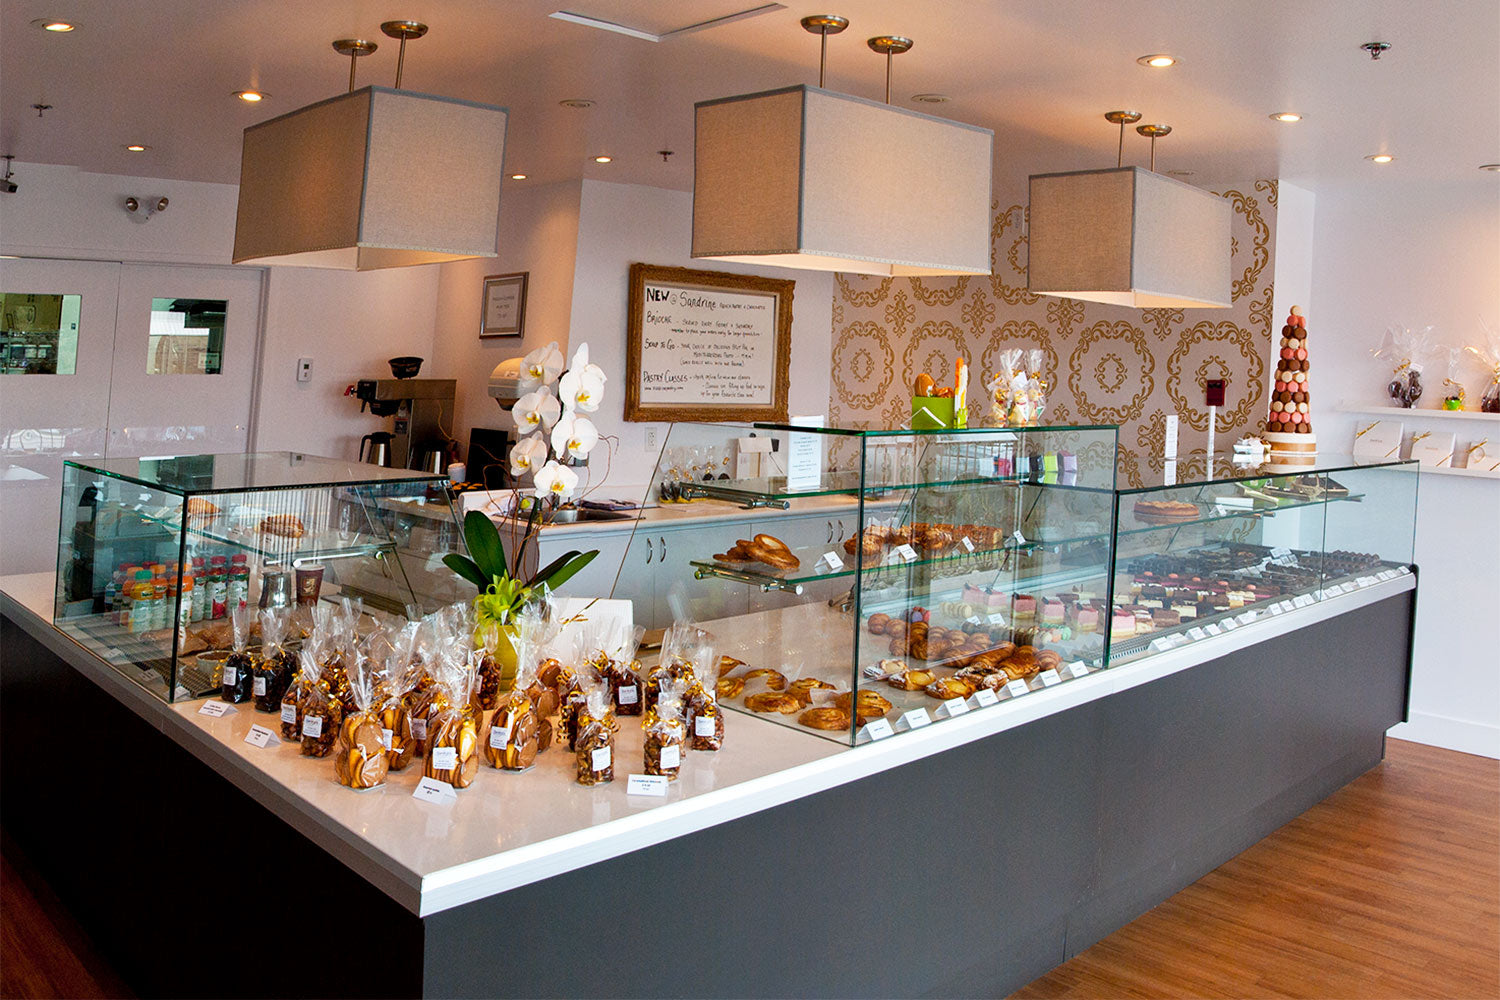 Find Sandrine Pastry and Chocolate at Orchard Place in Kelowna, BC